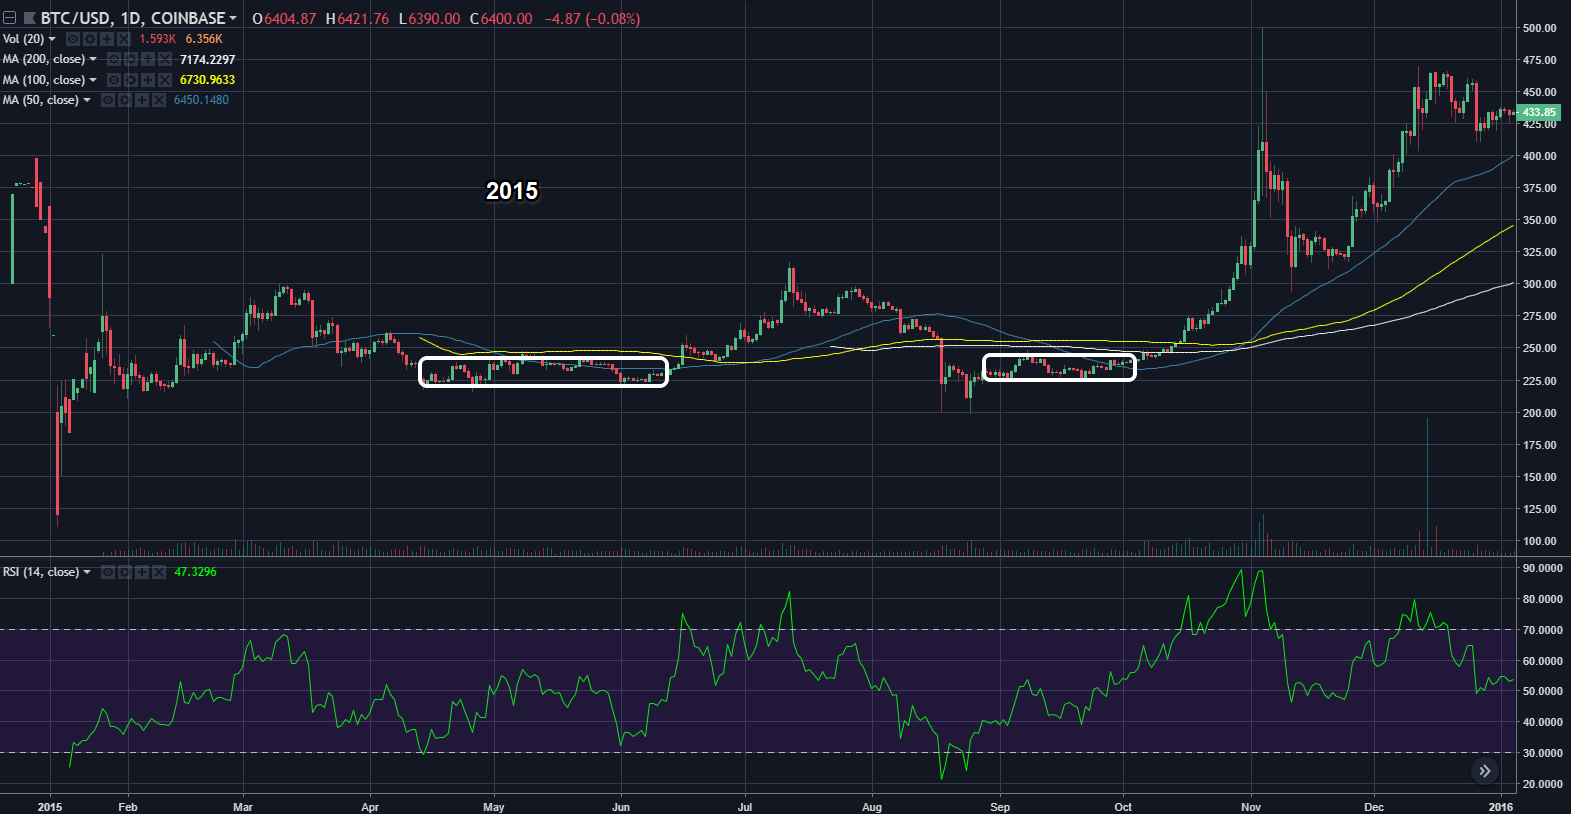 btcusd2015_daily.png